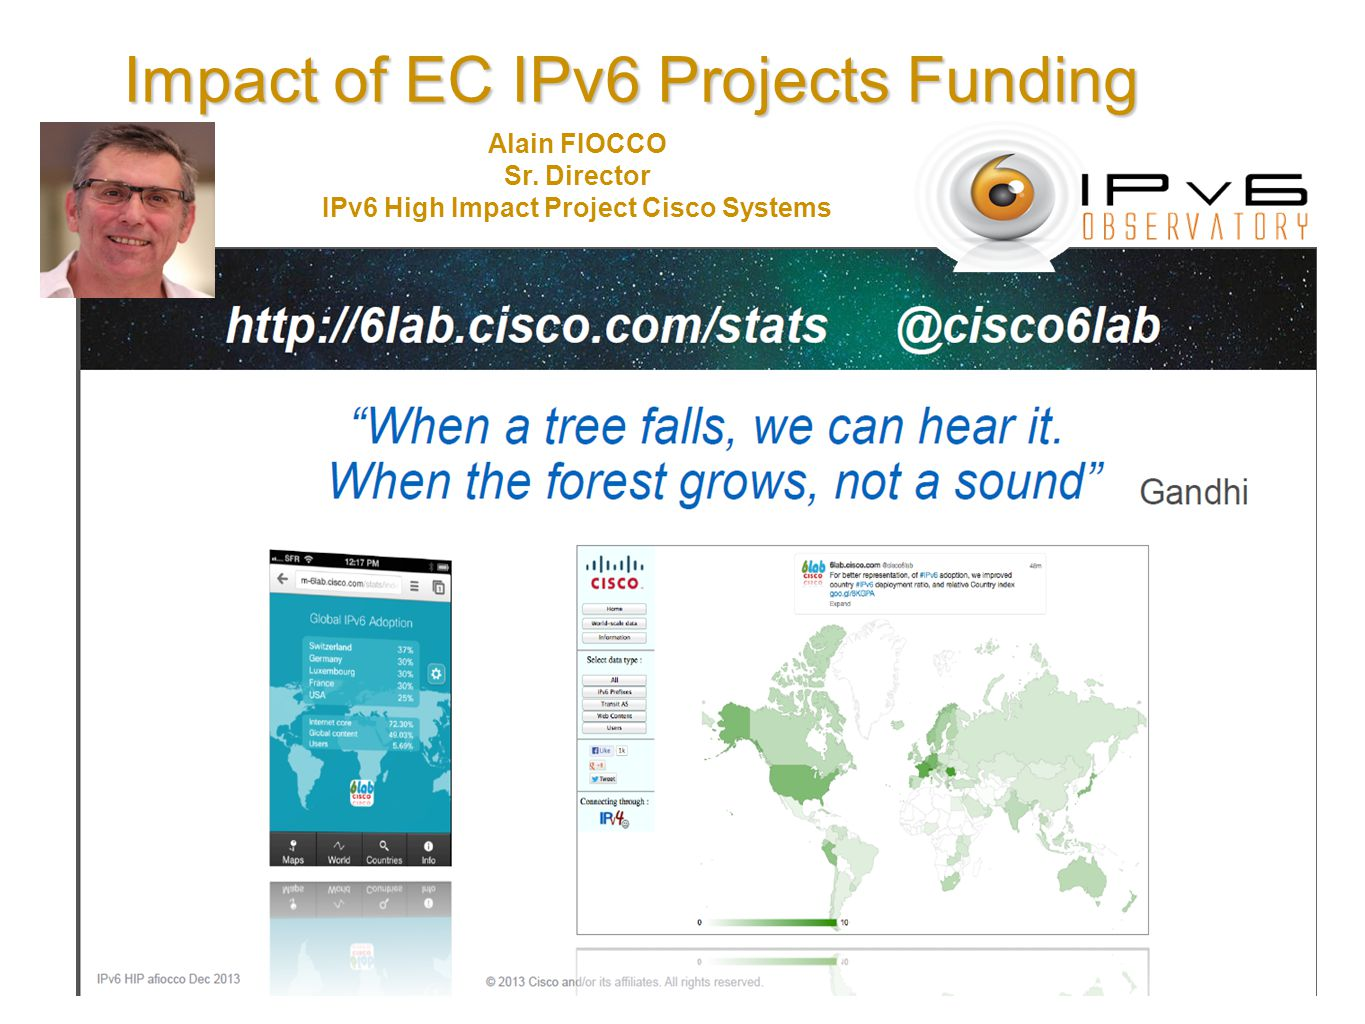 Impact of EC IPv6 Projects Funding Alain FIOCCO Sr. Director IPv6 High Impact Project Cisco Systems